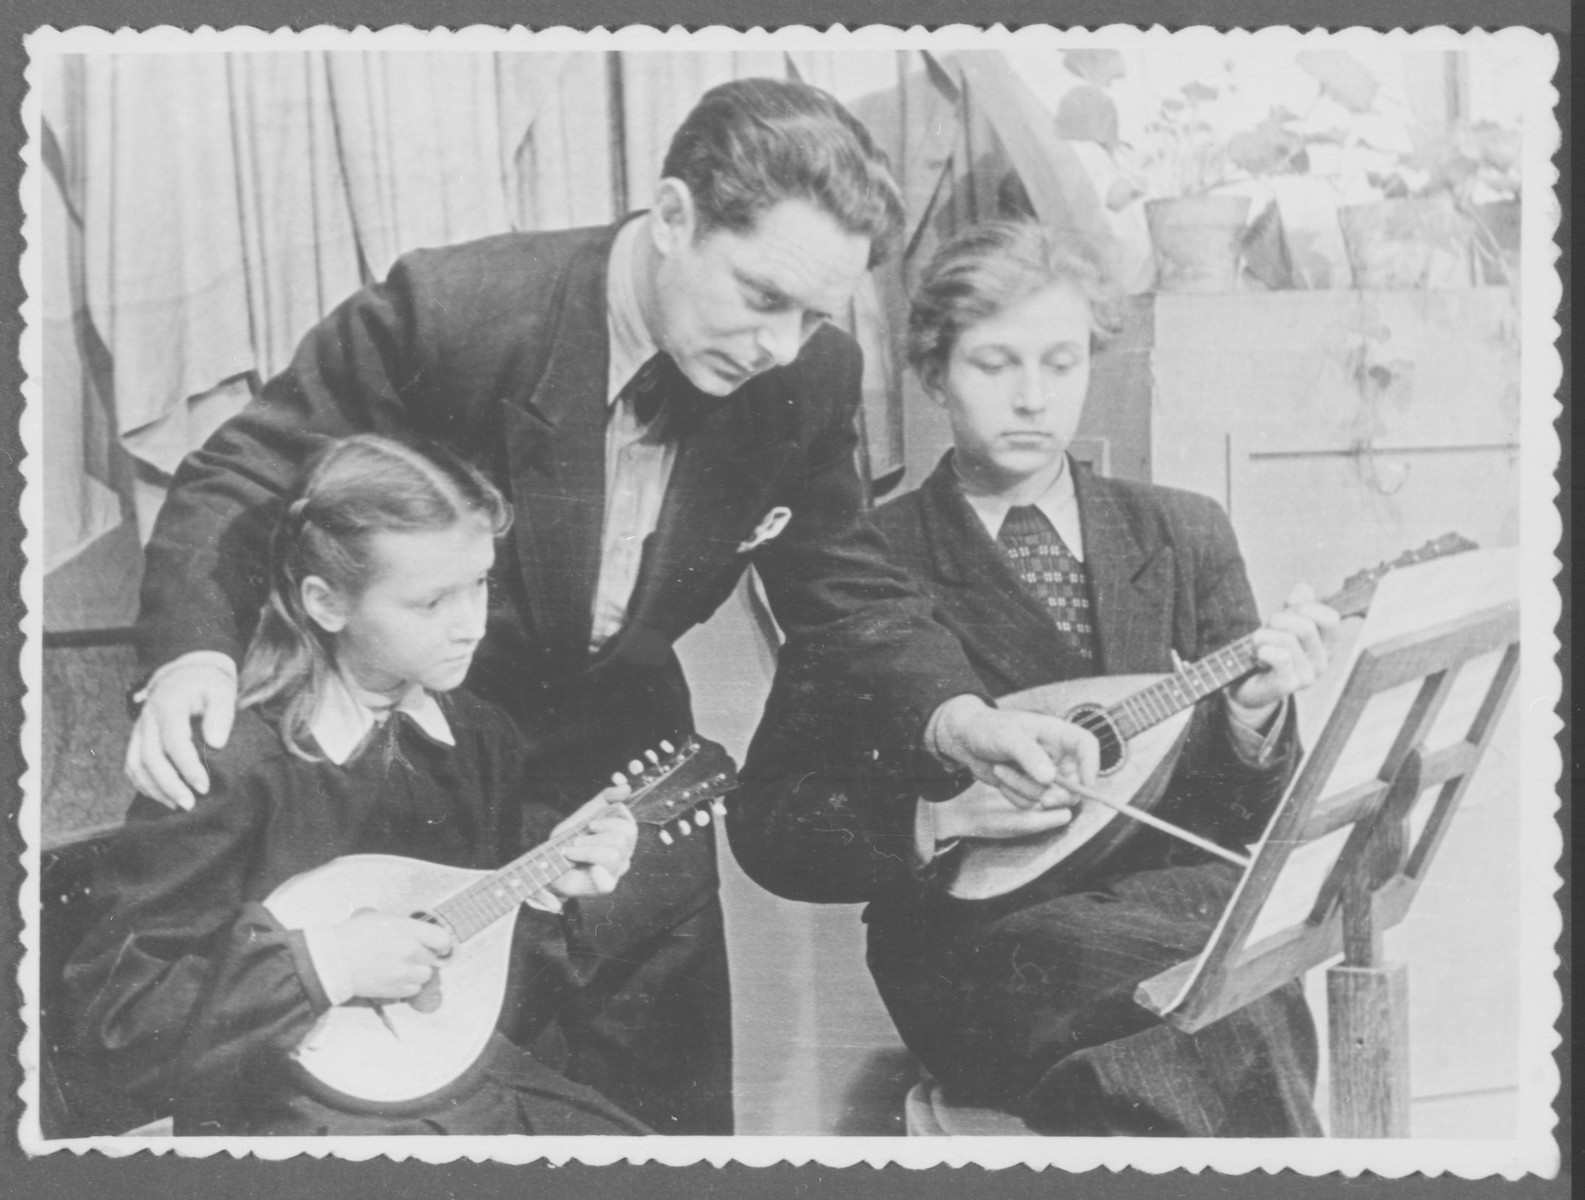 Elja Heifecs gives mandolin lessons to two students.